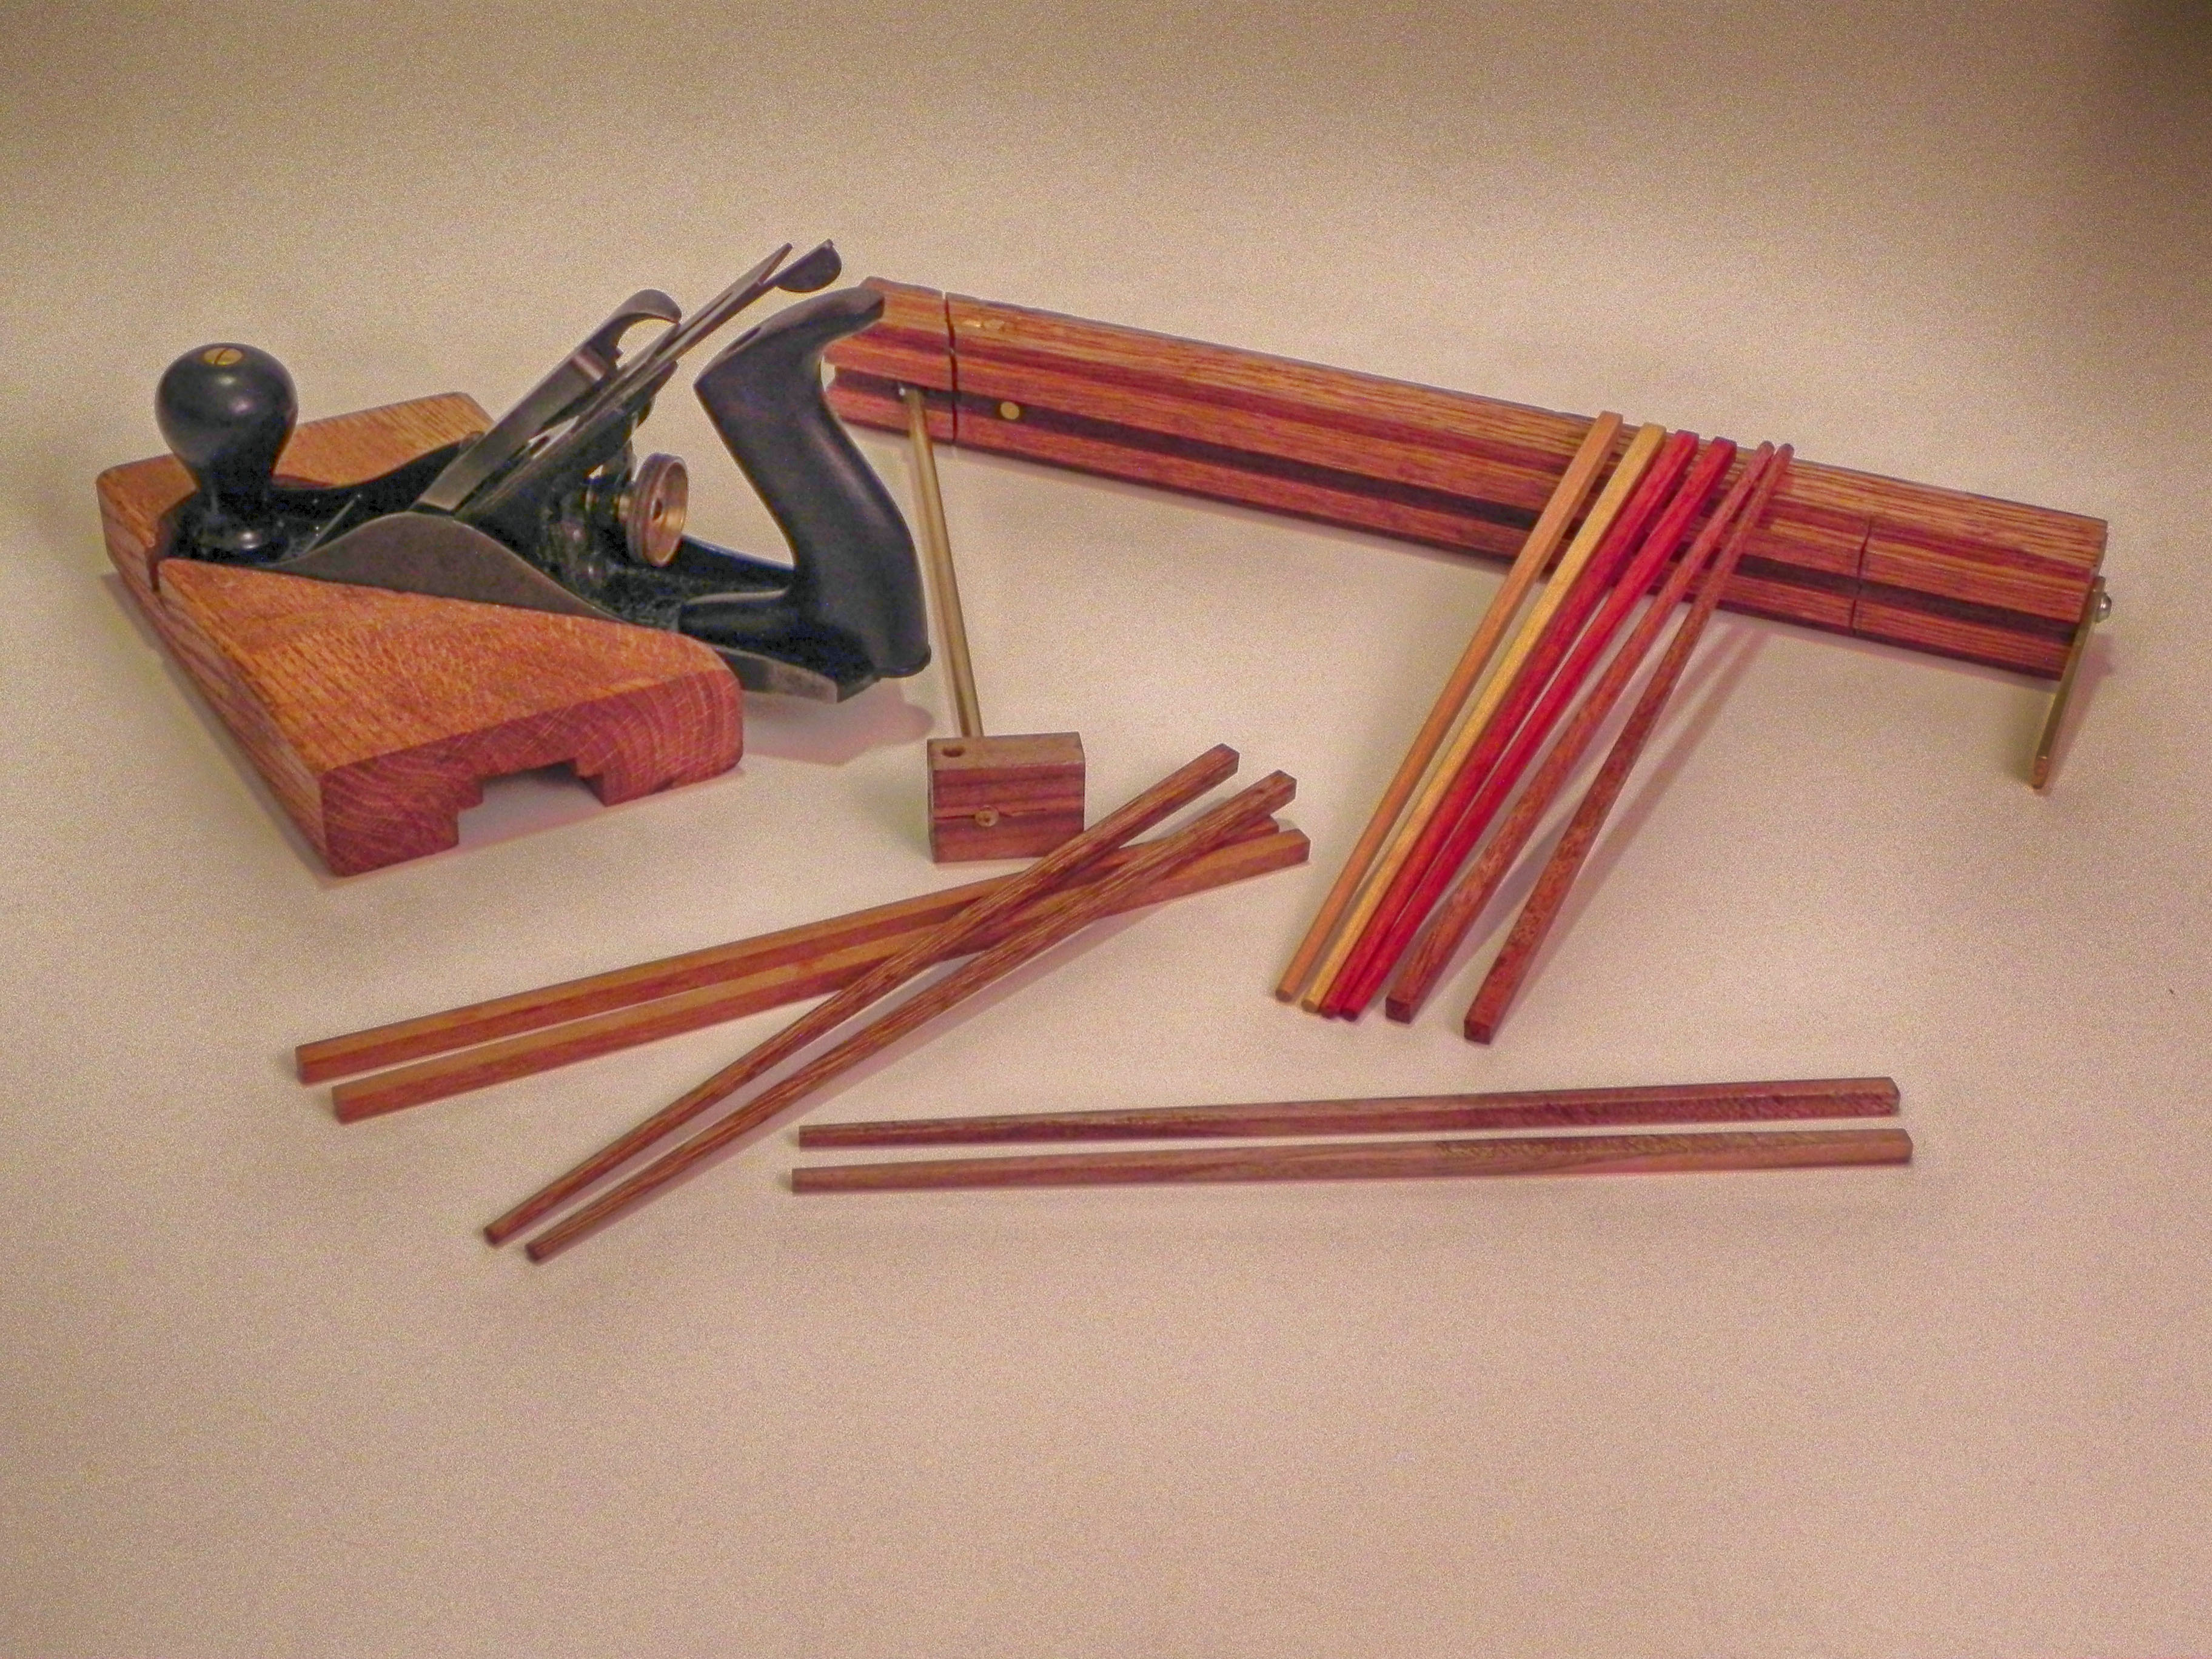 Picture of Customized Chopstick Maker